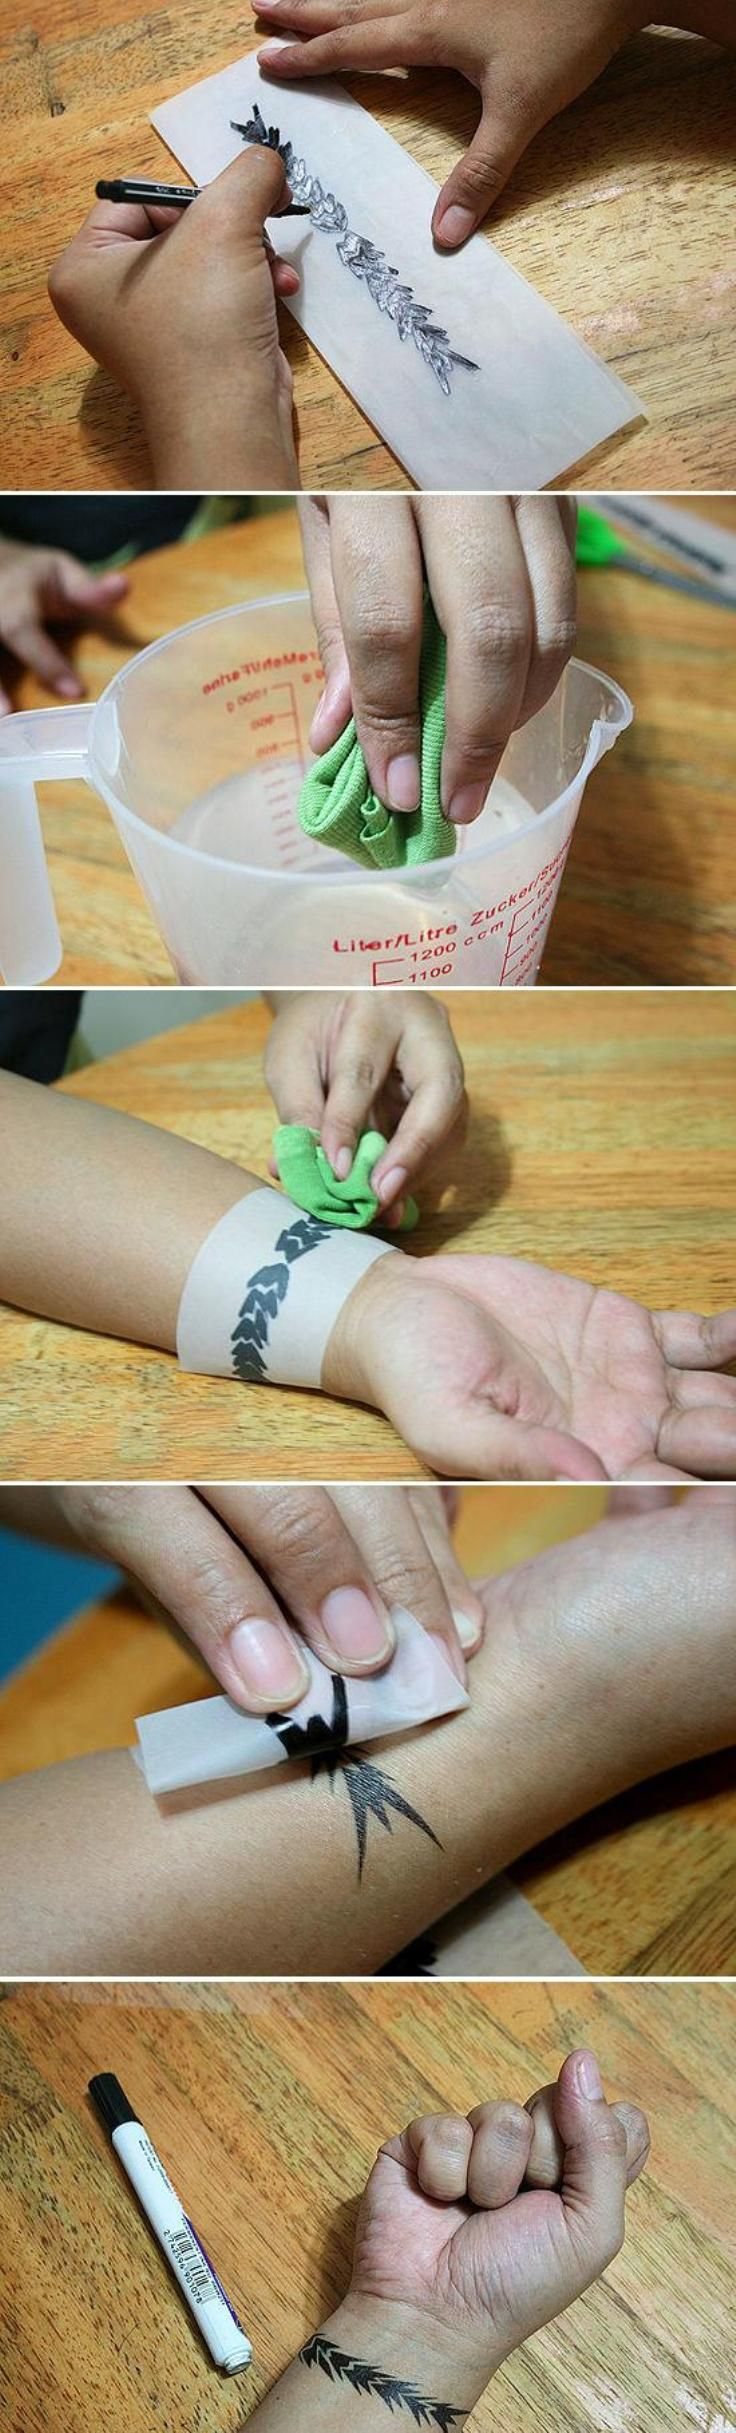 How to Create Your Own Temporary Tattoo- I can't wait to try this in my niece and nephew when I go to Tampa